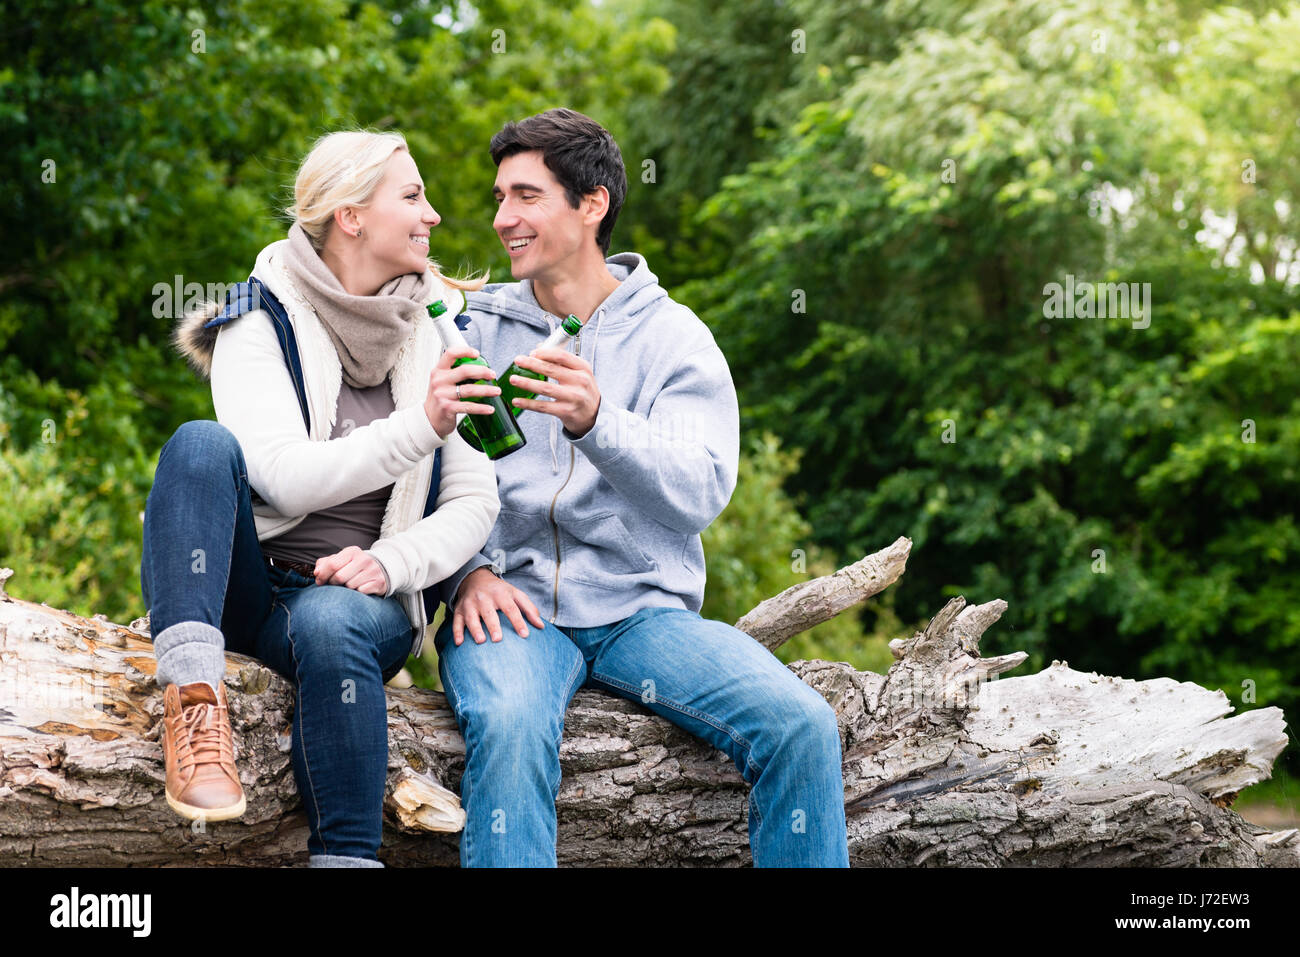 Lovers in vacation sitting at waterside clinking beer bottles - Stock Image